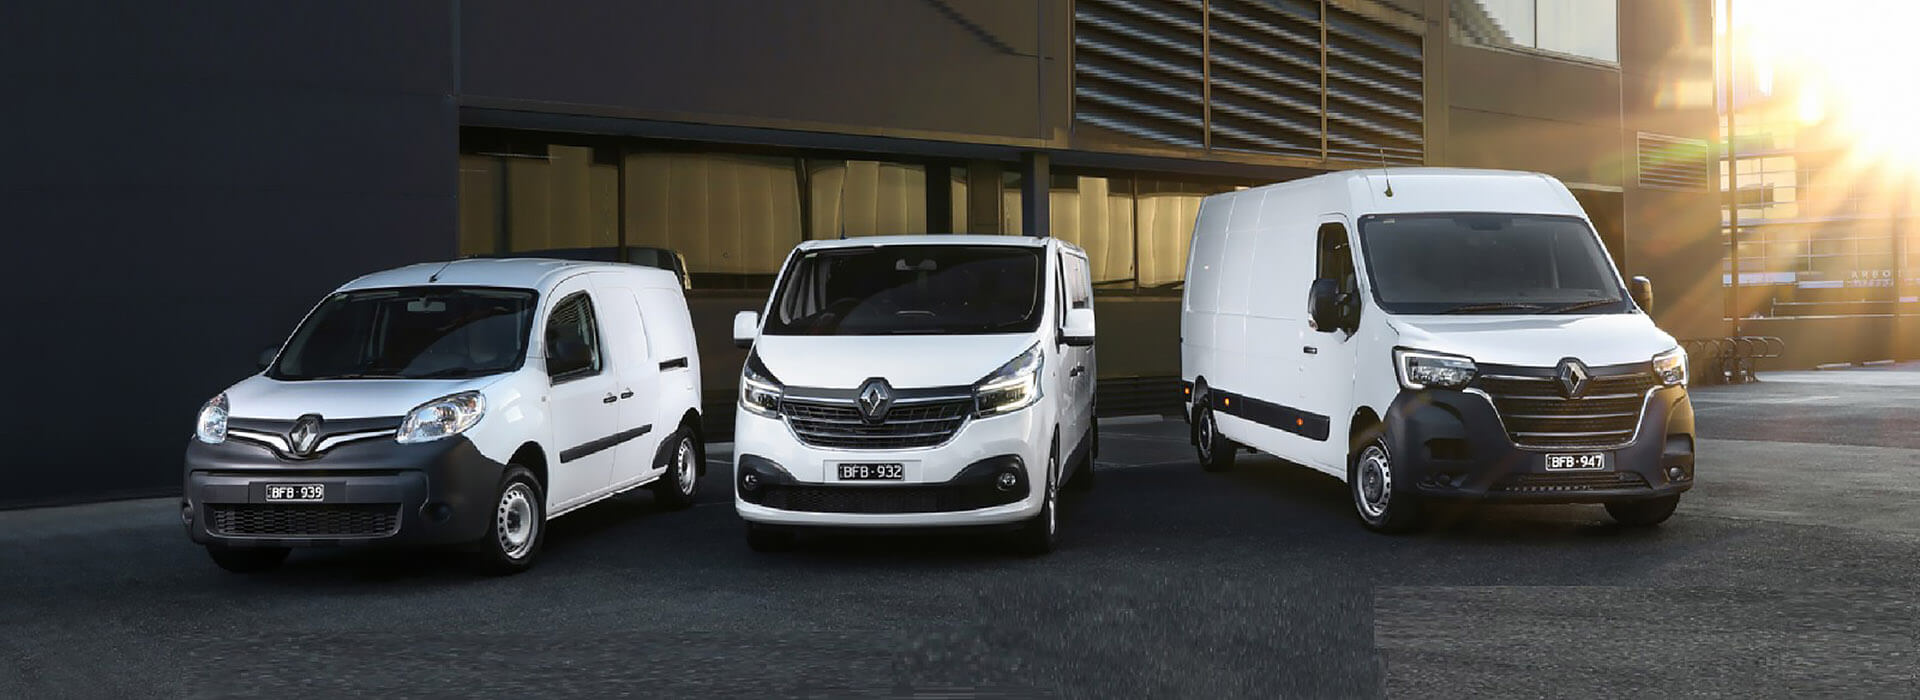 Renault Trafic vans in bamboo green and mercury grey hard at work on the building site.